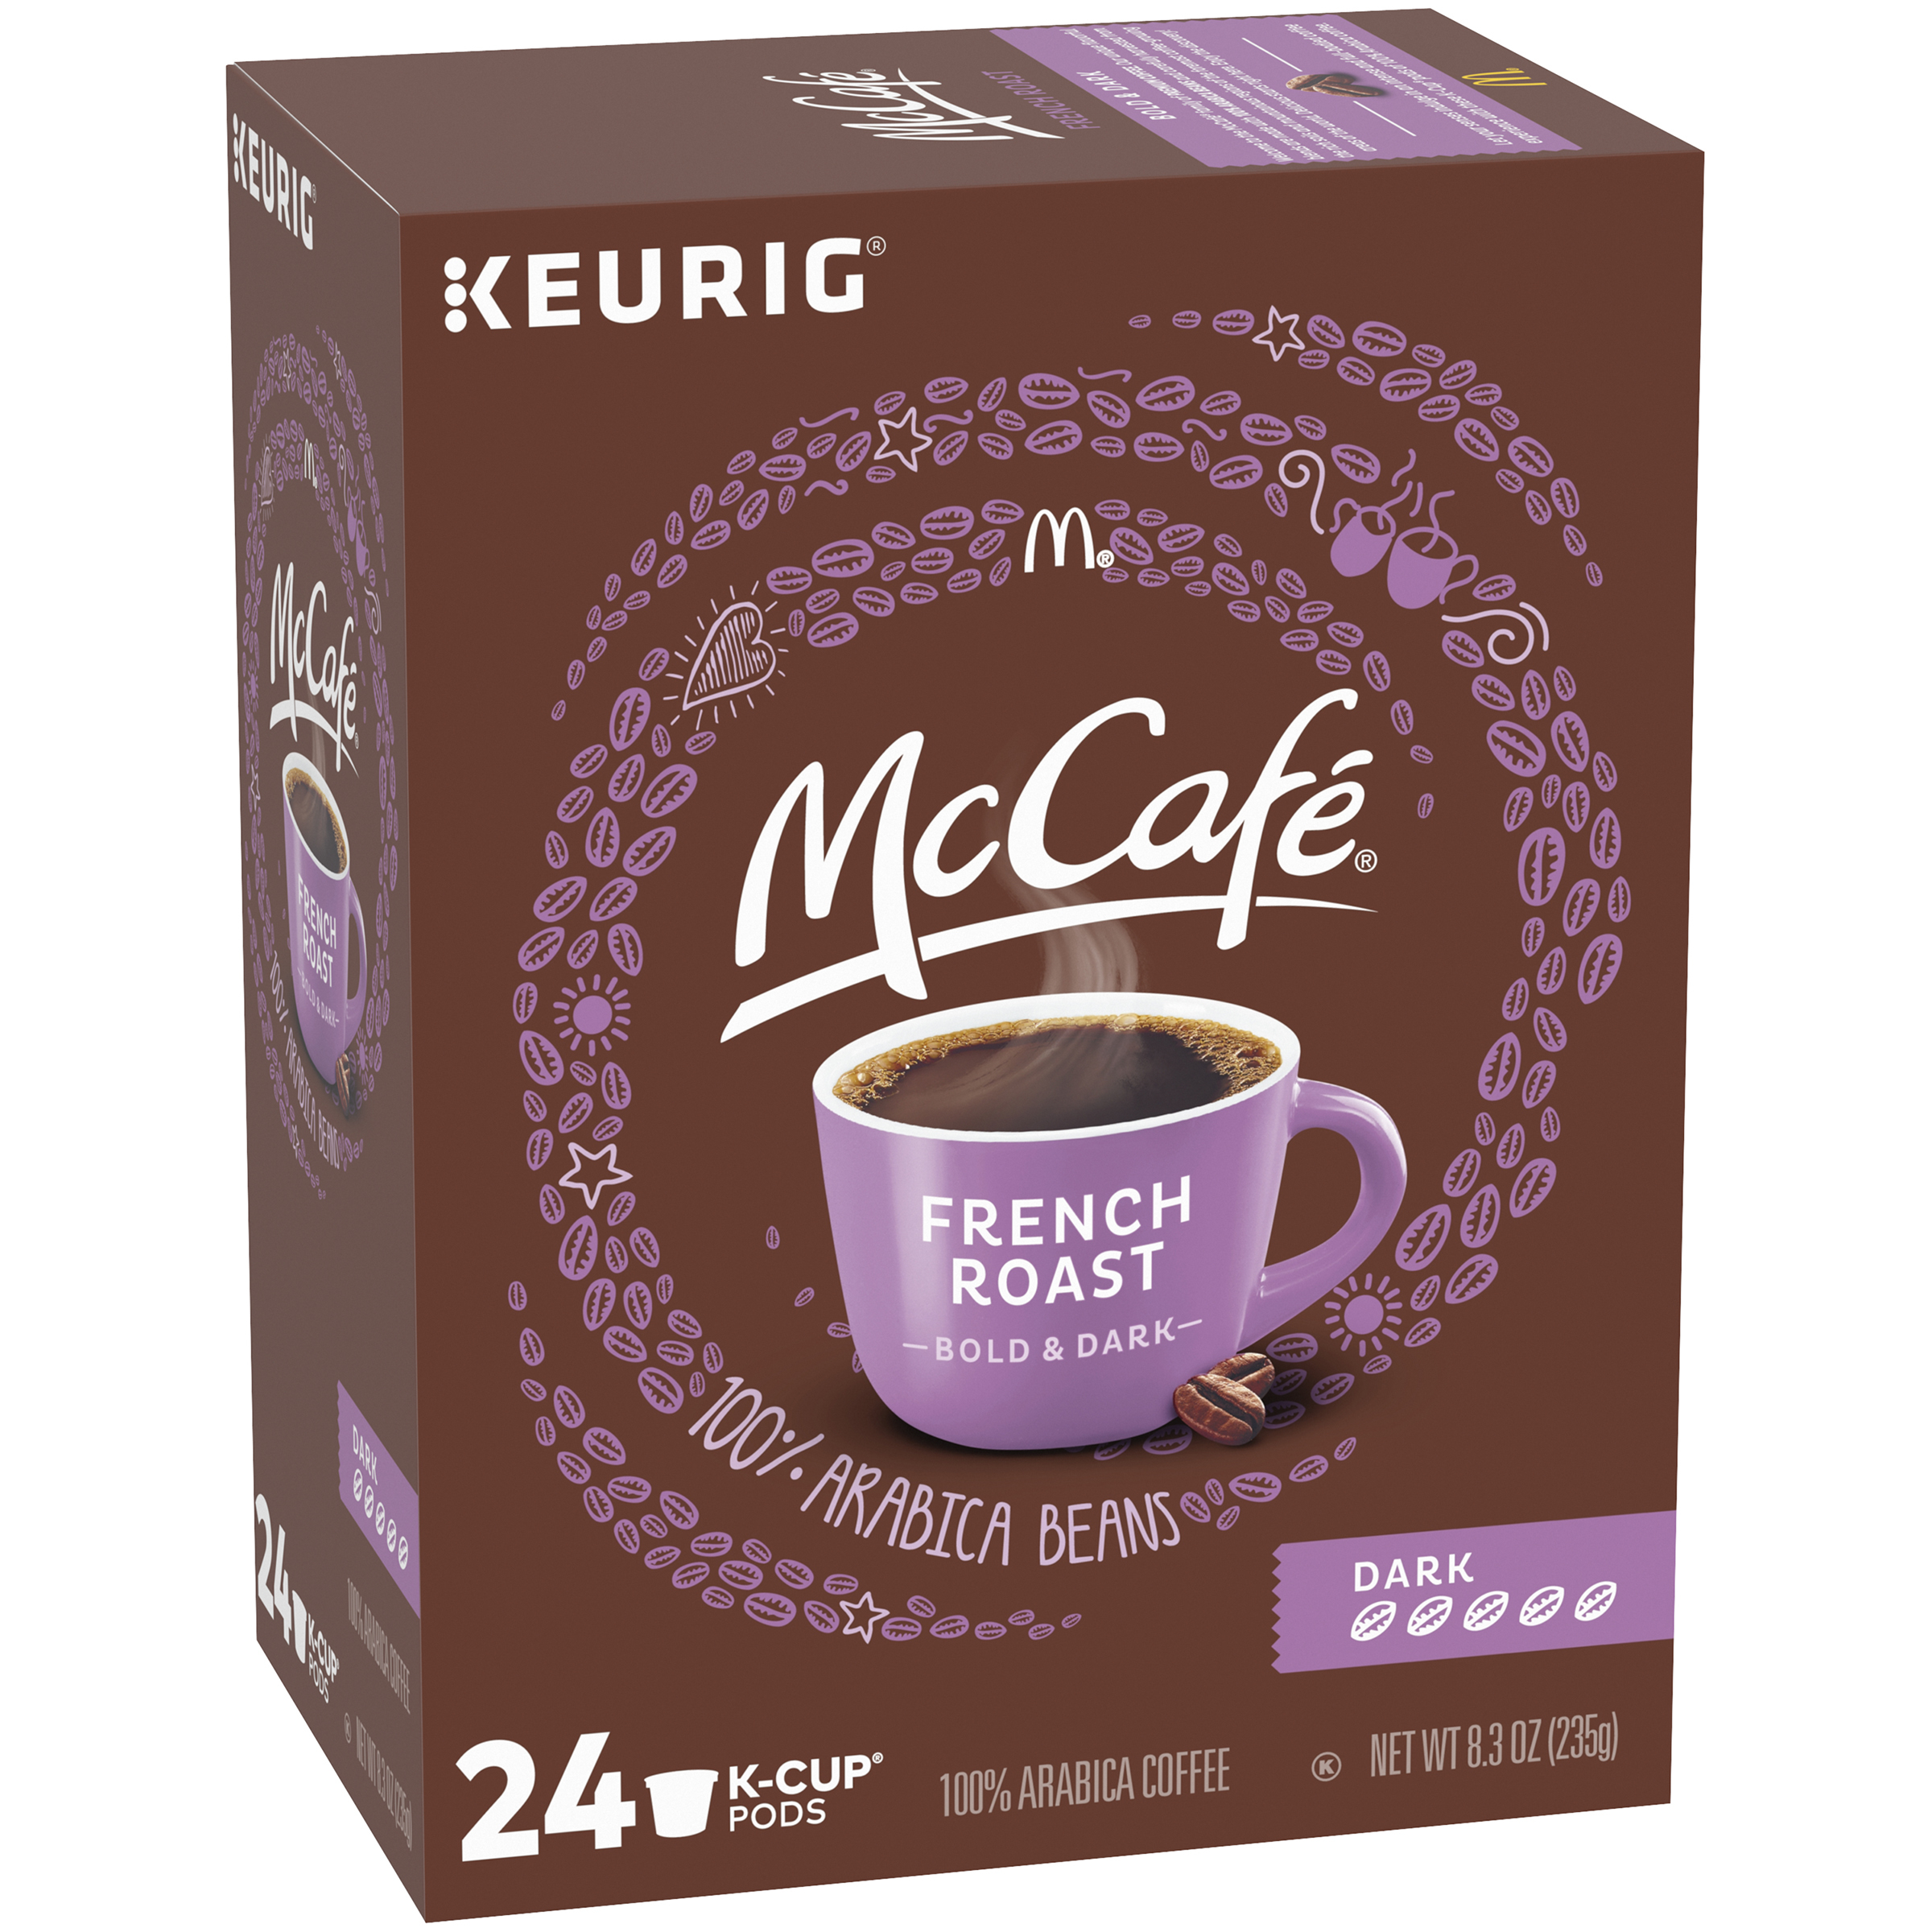 McCafe French Roast Coffee K-Cup Pods 24 count Box